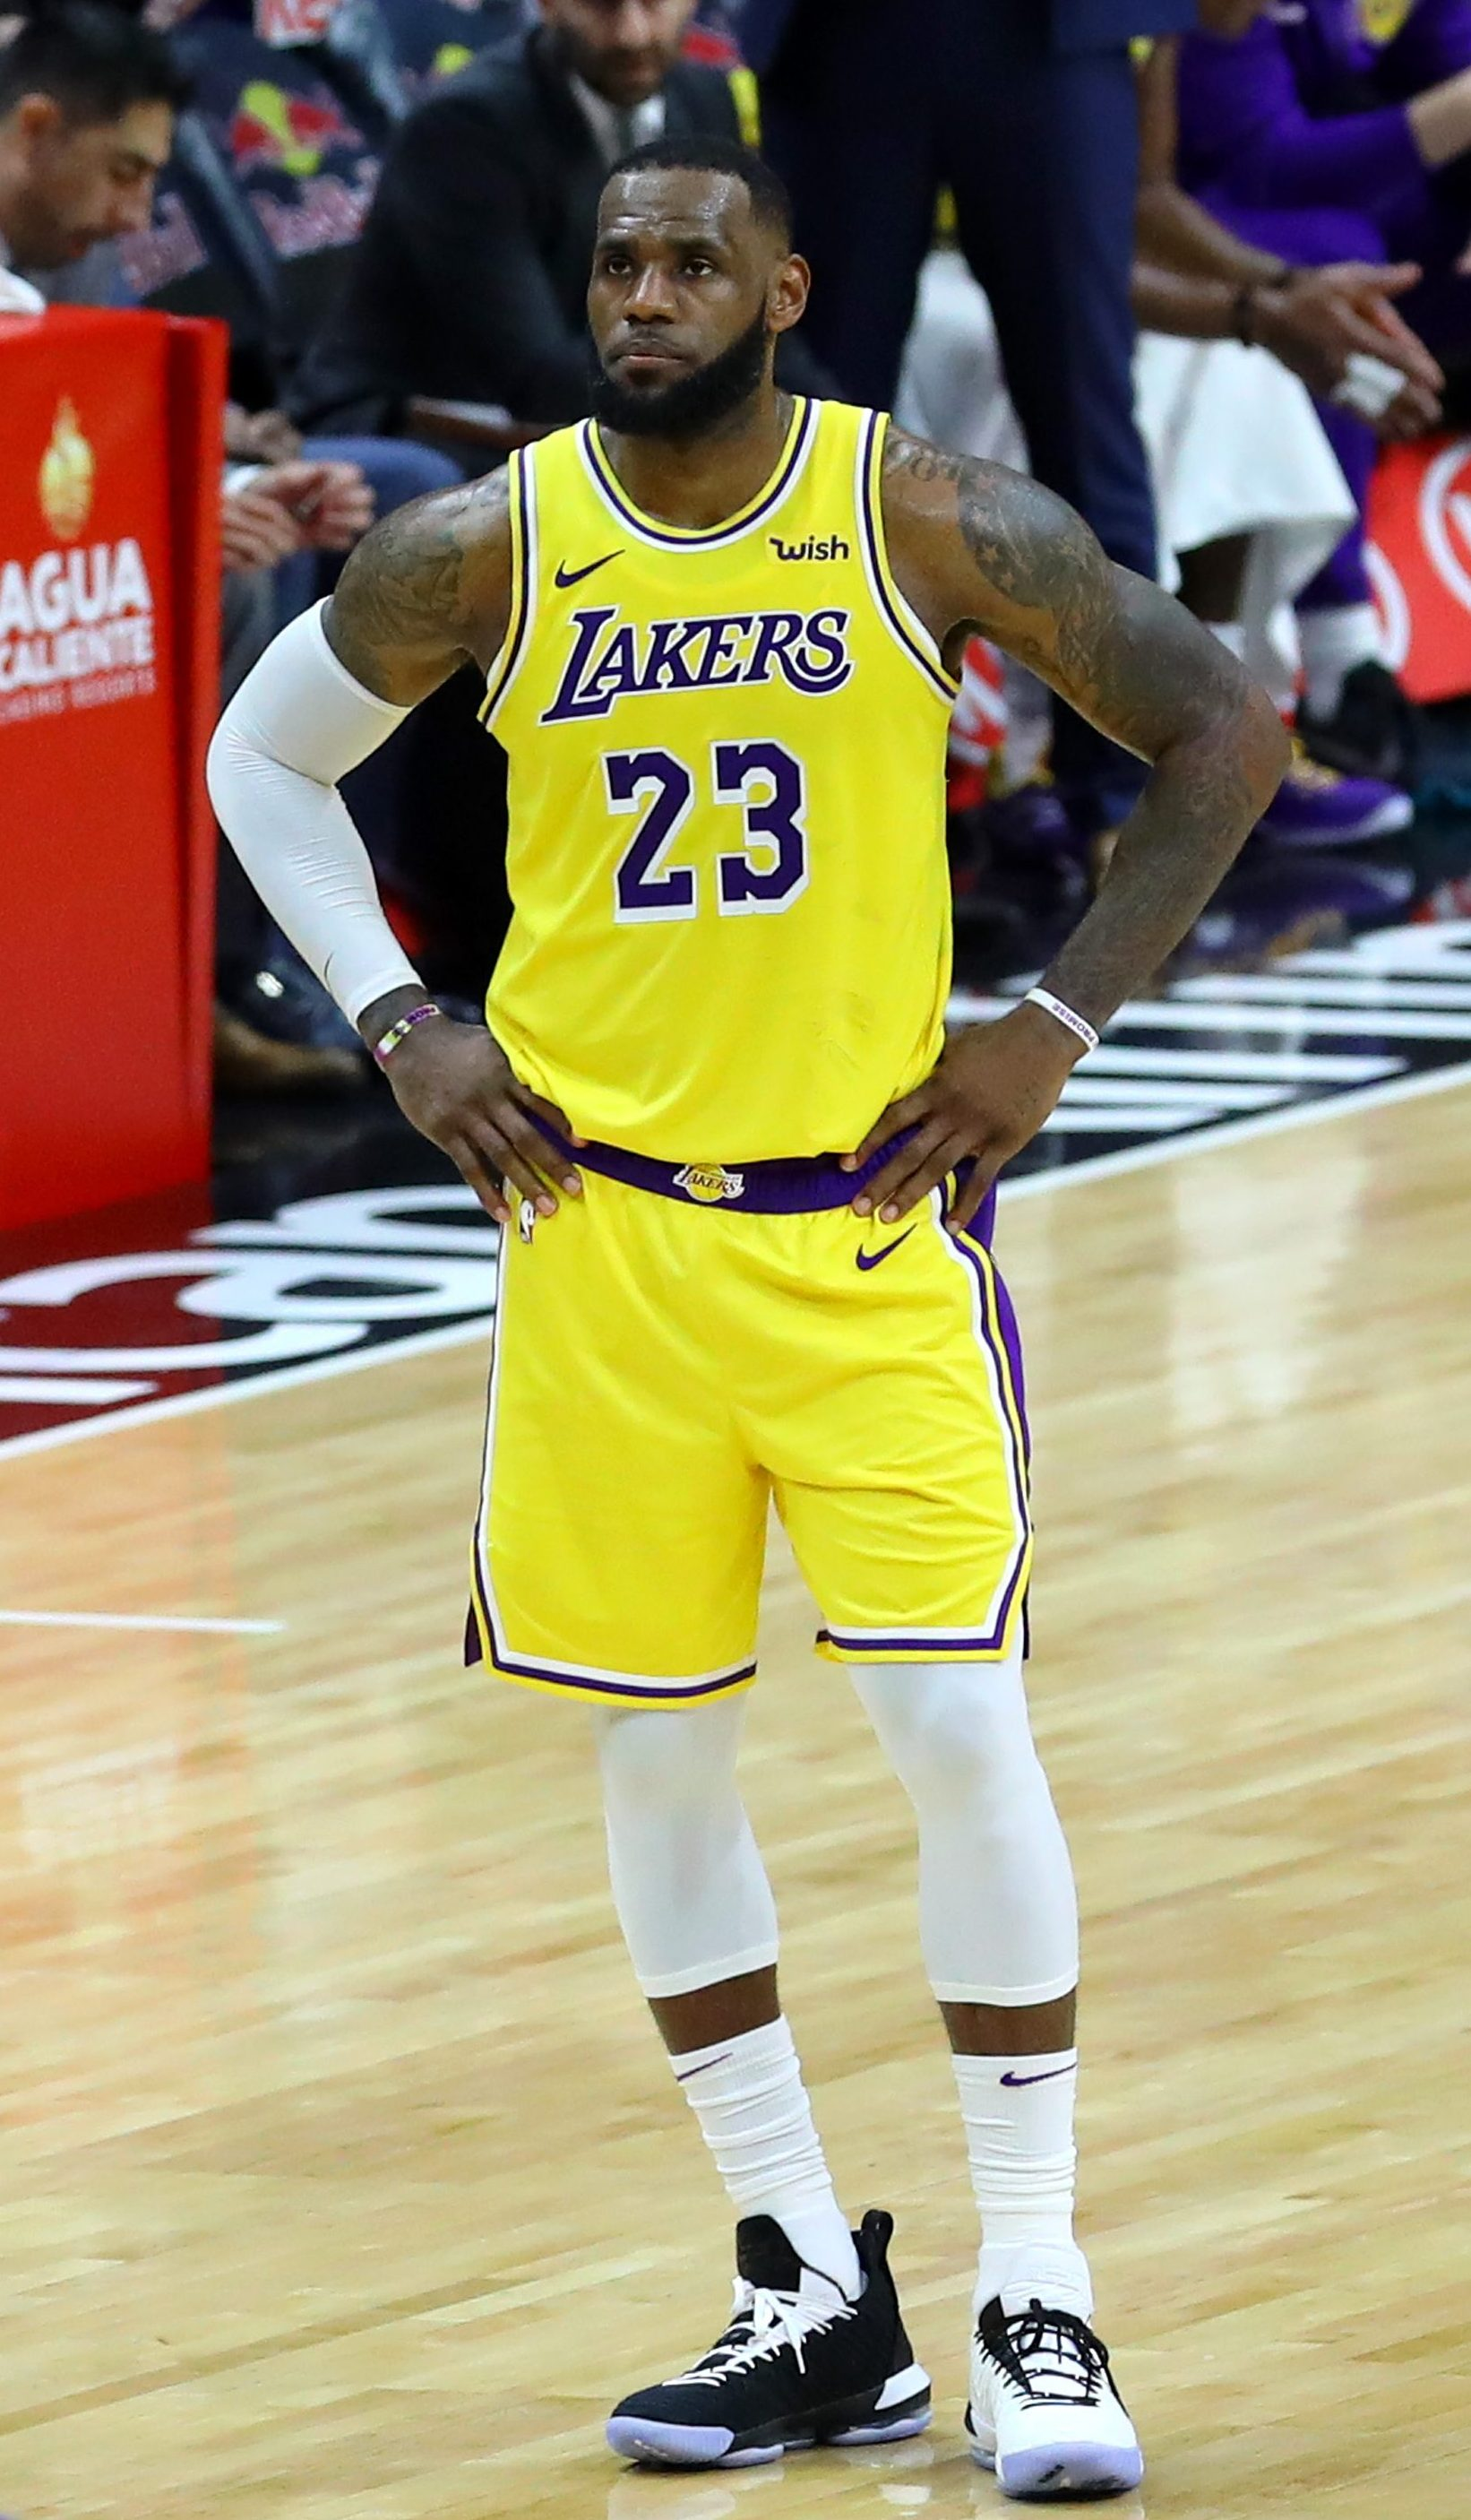 336b8dd72df LeBron James named captain of the 2019 Western Conference All-Star team in  Charlotte, NC. (L.A. Sentinel)